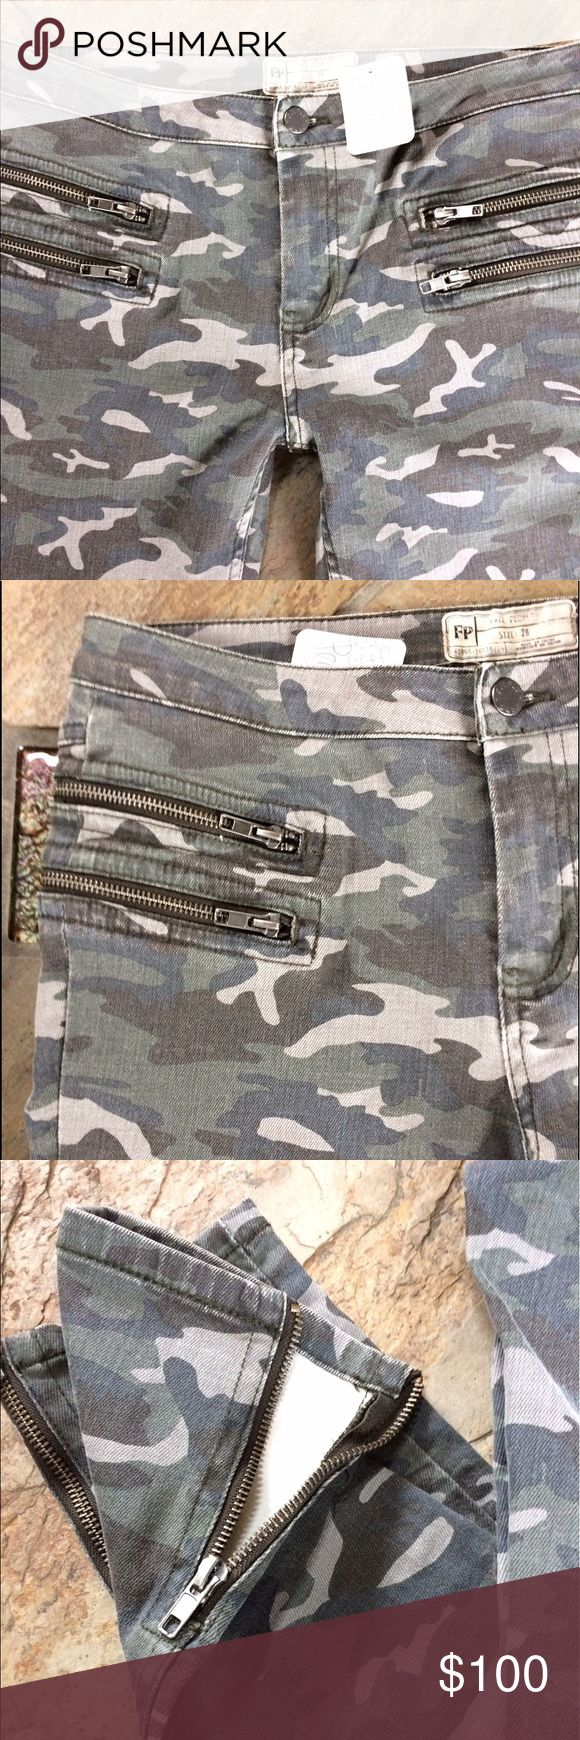 "🍃💕NWT Free People Camo Zip Ankle Skinny Denim NWT Free People Camo Skinny Denim Jean features edgy double zip front pockets, rear patch pockets,  pieces leg seam details, inner ankle zip. Approximate measurements laying flat: Waist 16.5"", 9"" front rise, inseam 26.5"". Comprised of a stretch blend: 94% Cotton, 5% Poly, 1% Spandex. Fit is TTS. No trades ever Free People Jeans Skinny"